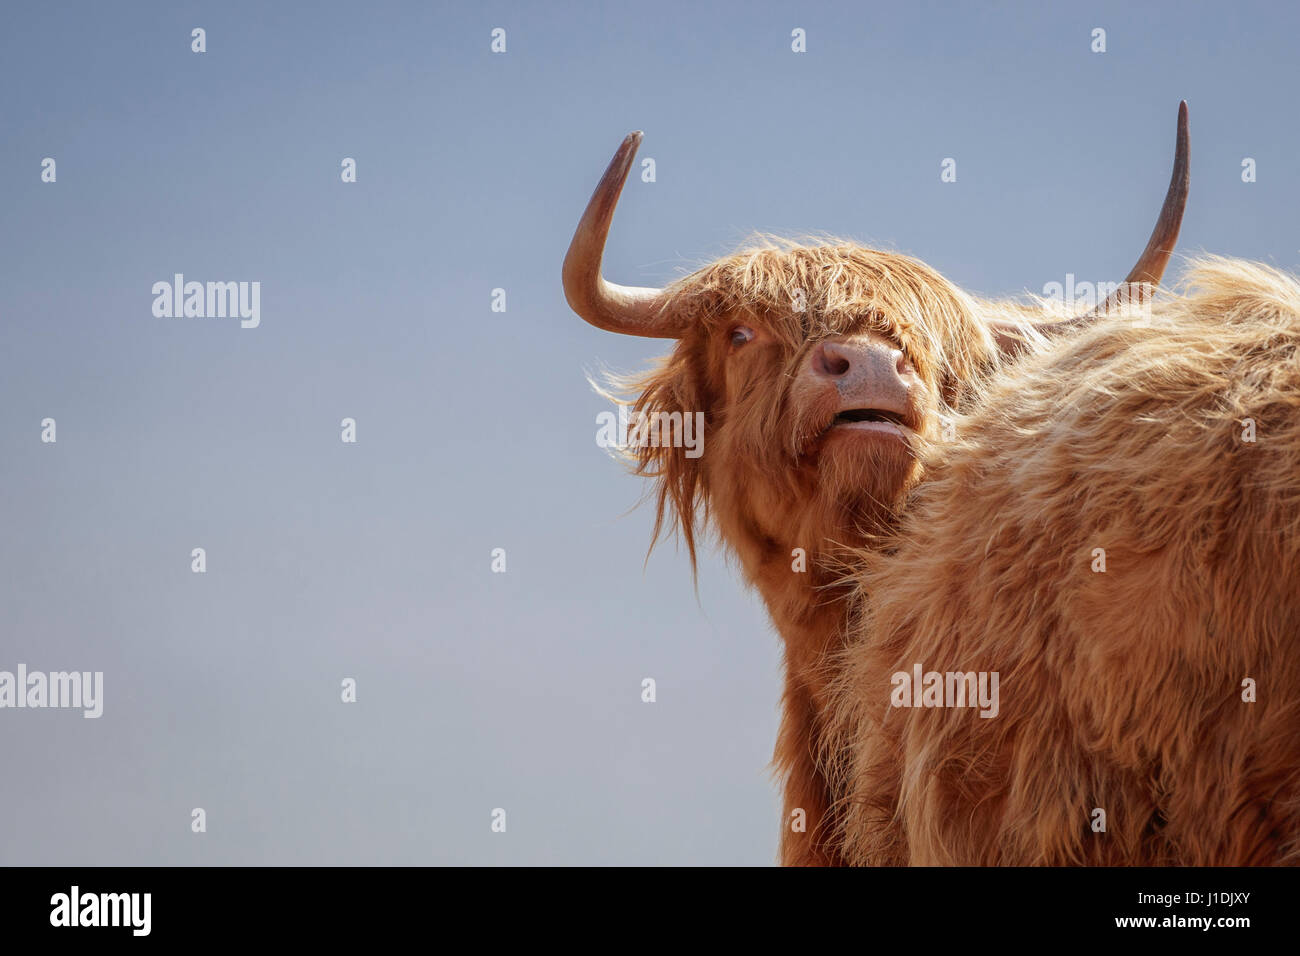 Highland Cow, Highland Cattle, Hairy Moo Coo - Stock Image